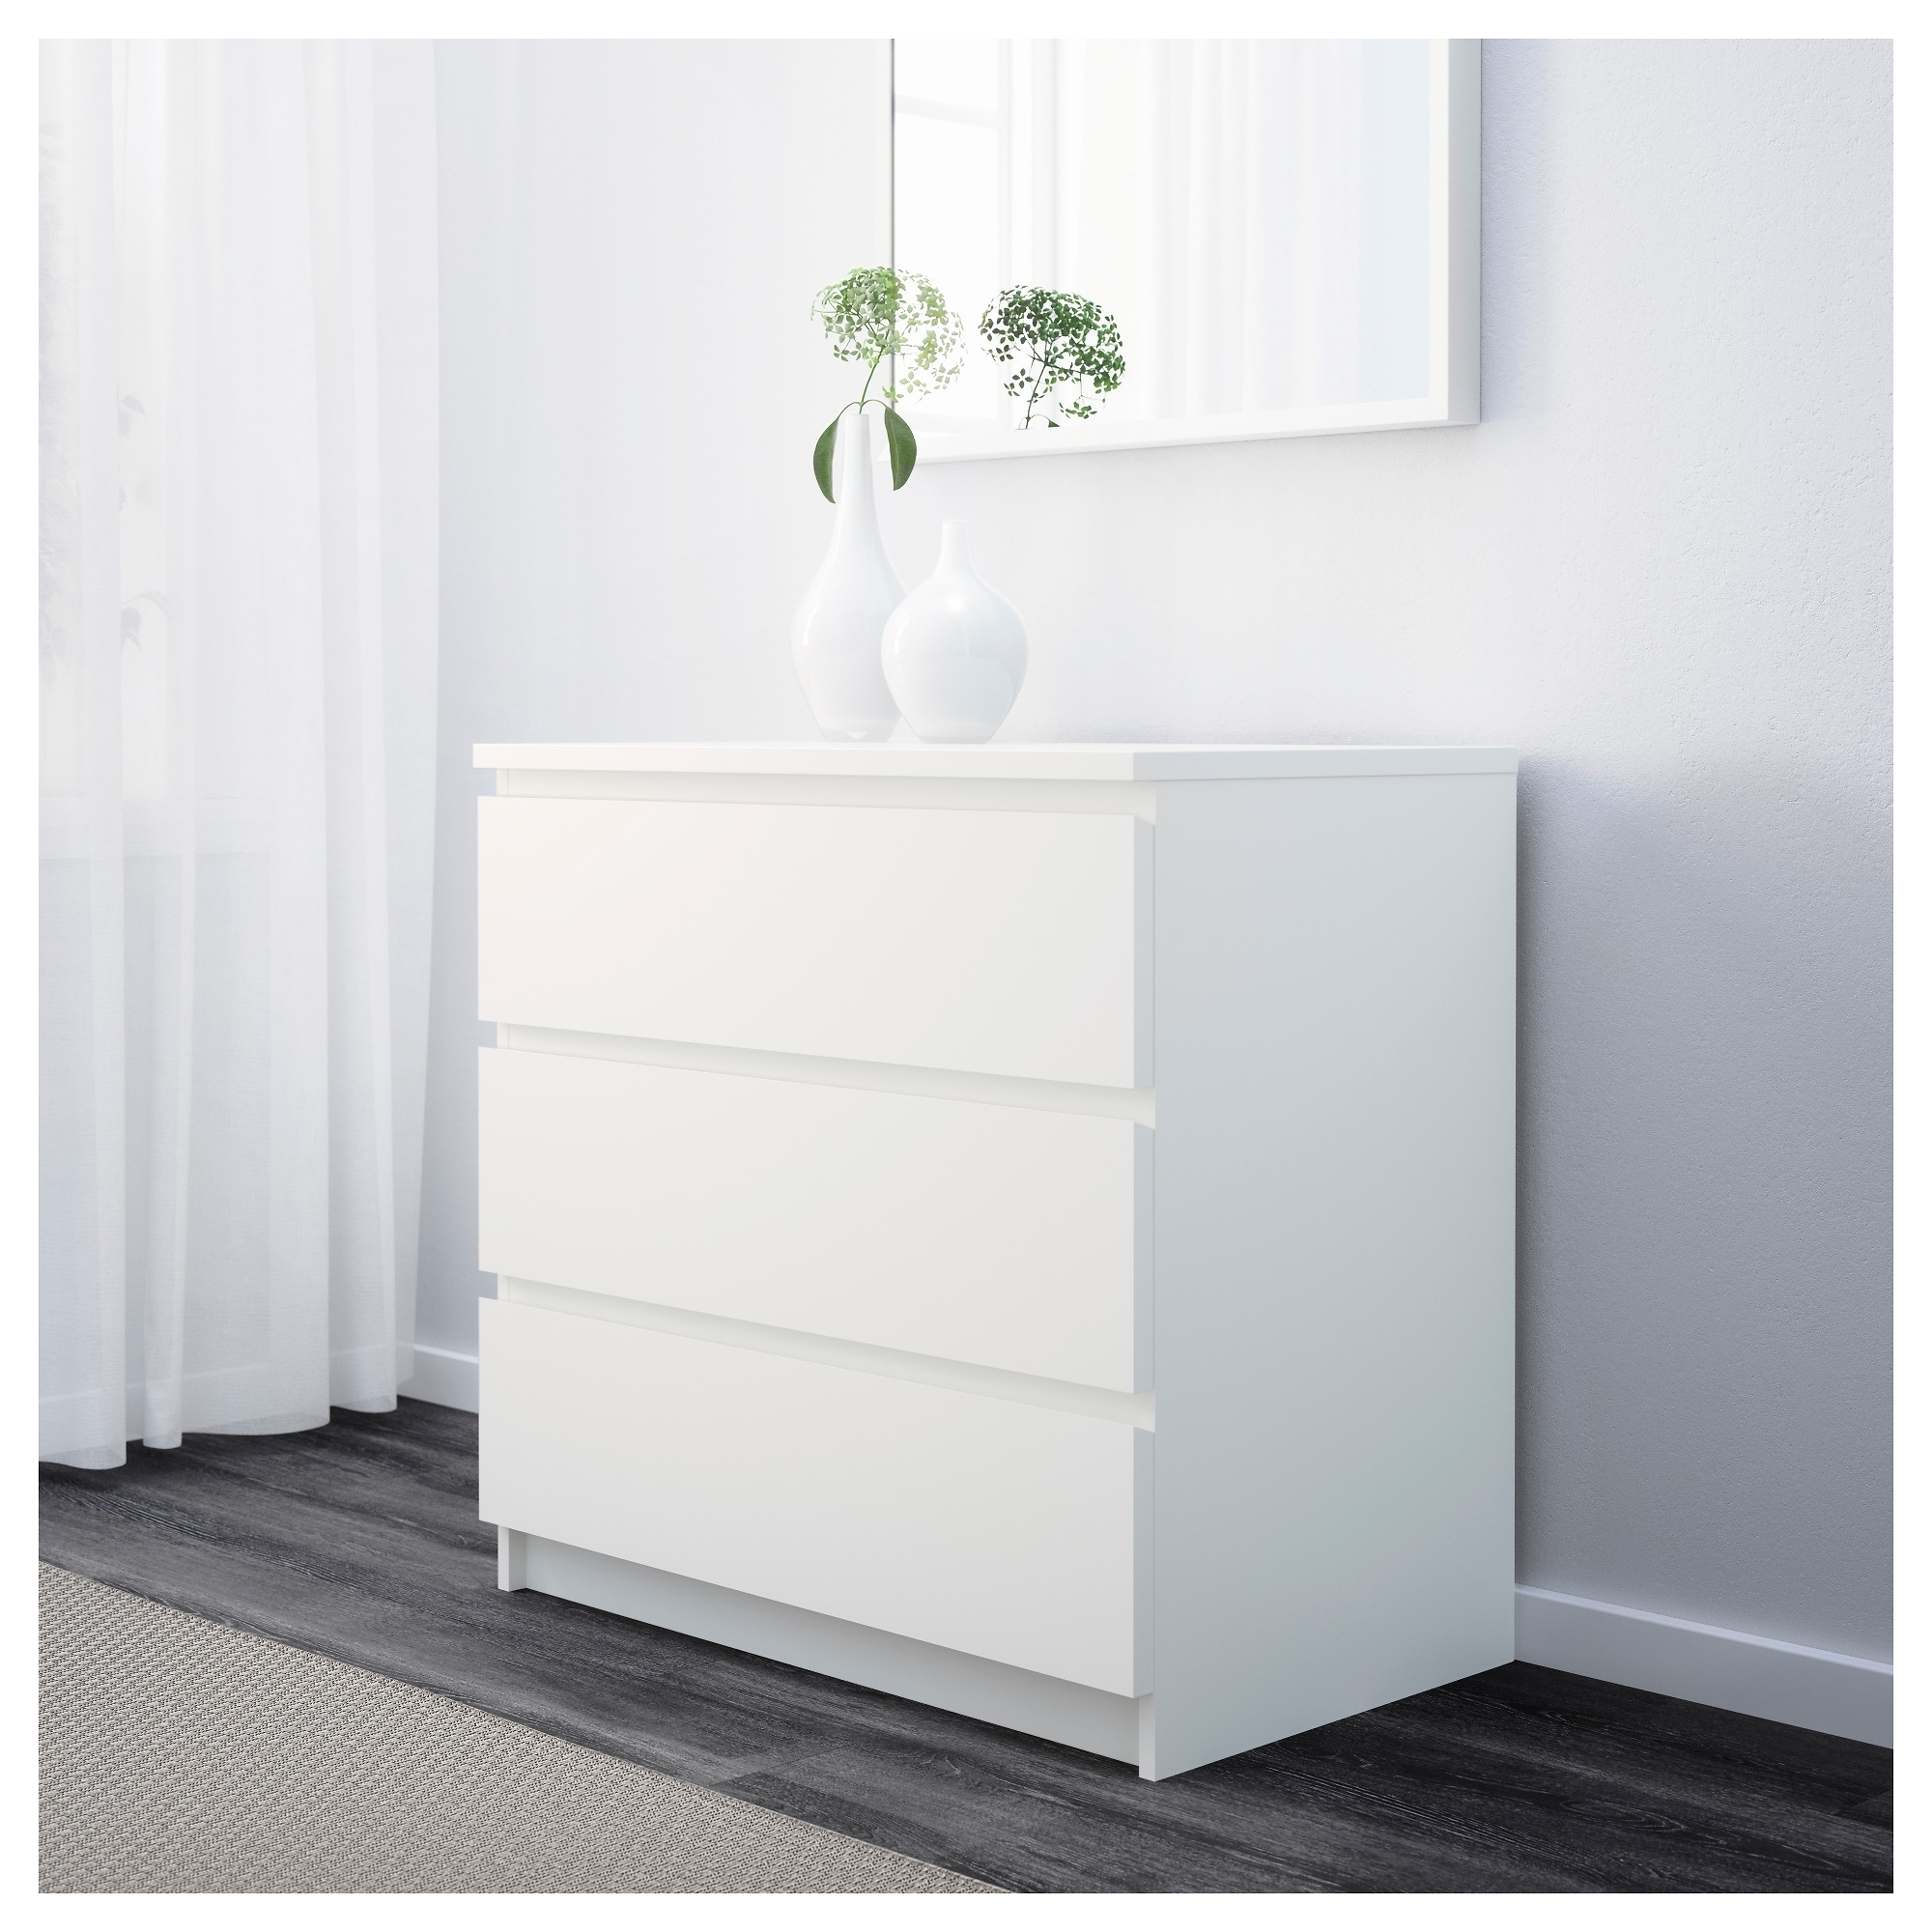 Inspiration about Ikea Lithuania – Shop For Furniture, Lighting, Home Accessories & More Pertaining To Recent Koip 6 Door Sideboards (#15 of 20)